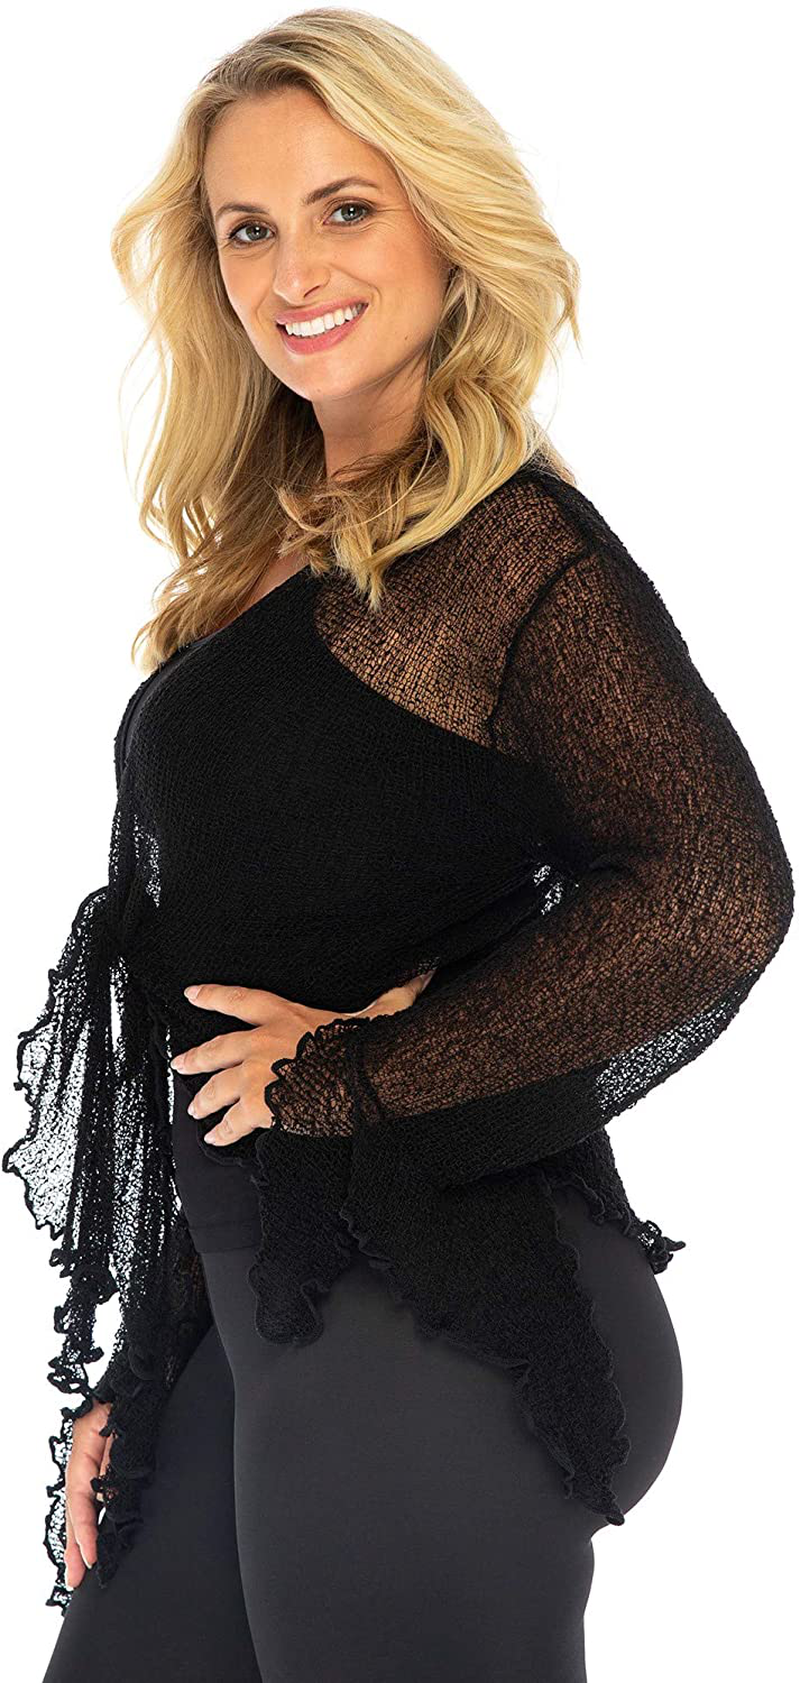 Back From Bali Womens Plus Size Sheer Shrug Bolero Long Sleeves Cropped Cardigan Bell Sleeves 2X 3X 4X Lightweight